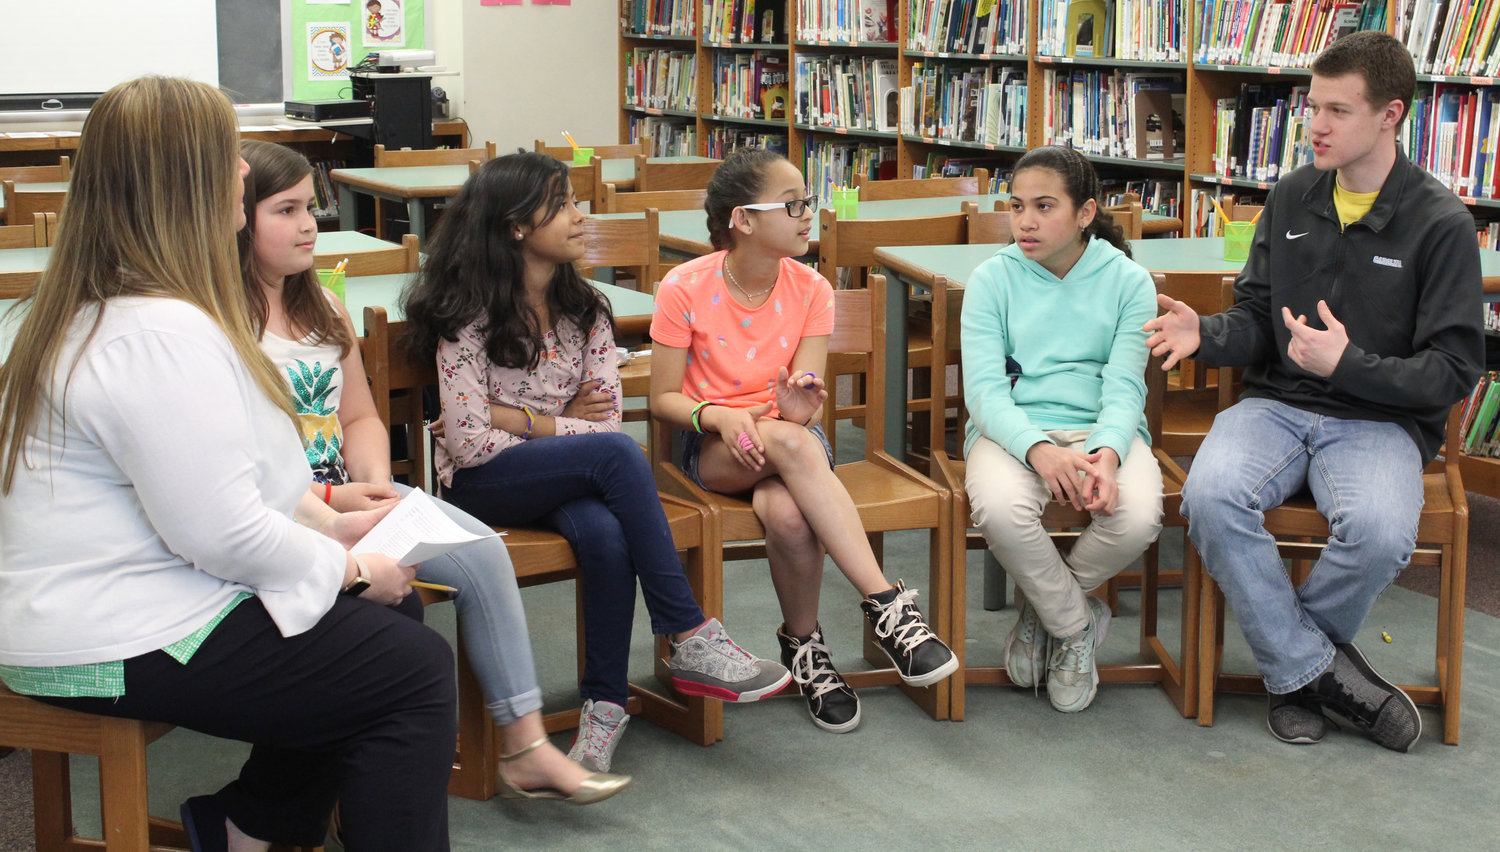 Raider Newscast reporter Tim Nevil, right, and instructional aide Christy Walker interview Ilianyeliz Lugo Soto, Ekmarie Curet Torres, Janielys Moreno Zambrana and Fatima Torres Rodriguez in April. The four recently moved to Middletown from Puerto Rico.